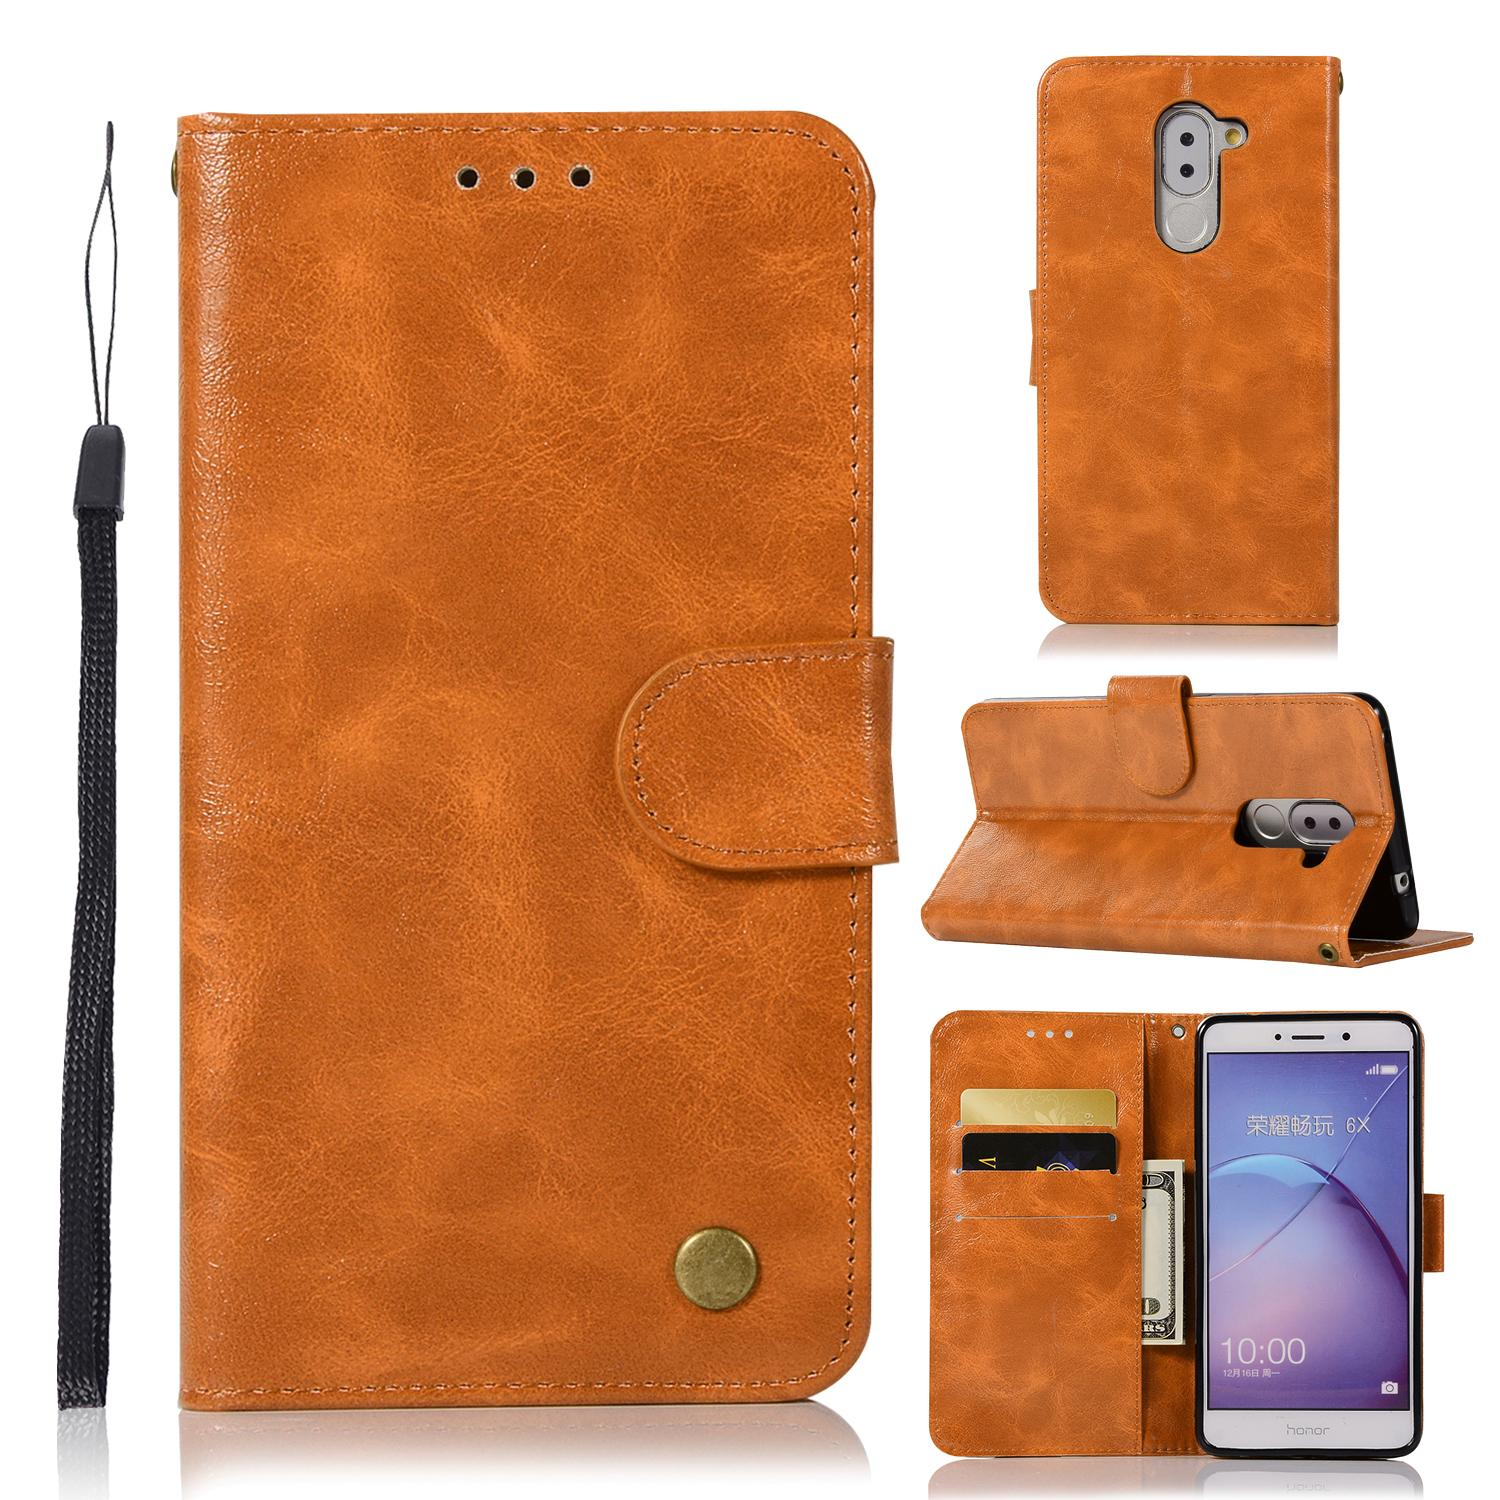 Casing For Huawei Honor 6x,reto Leather Wallet Case Magnetic Double Card Holder Flip Cover By Life Goes On.